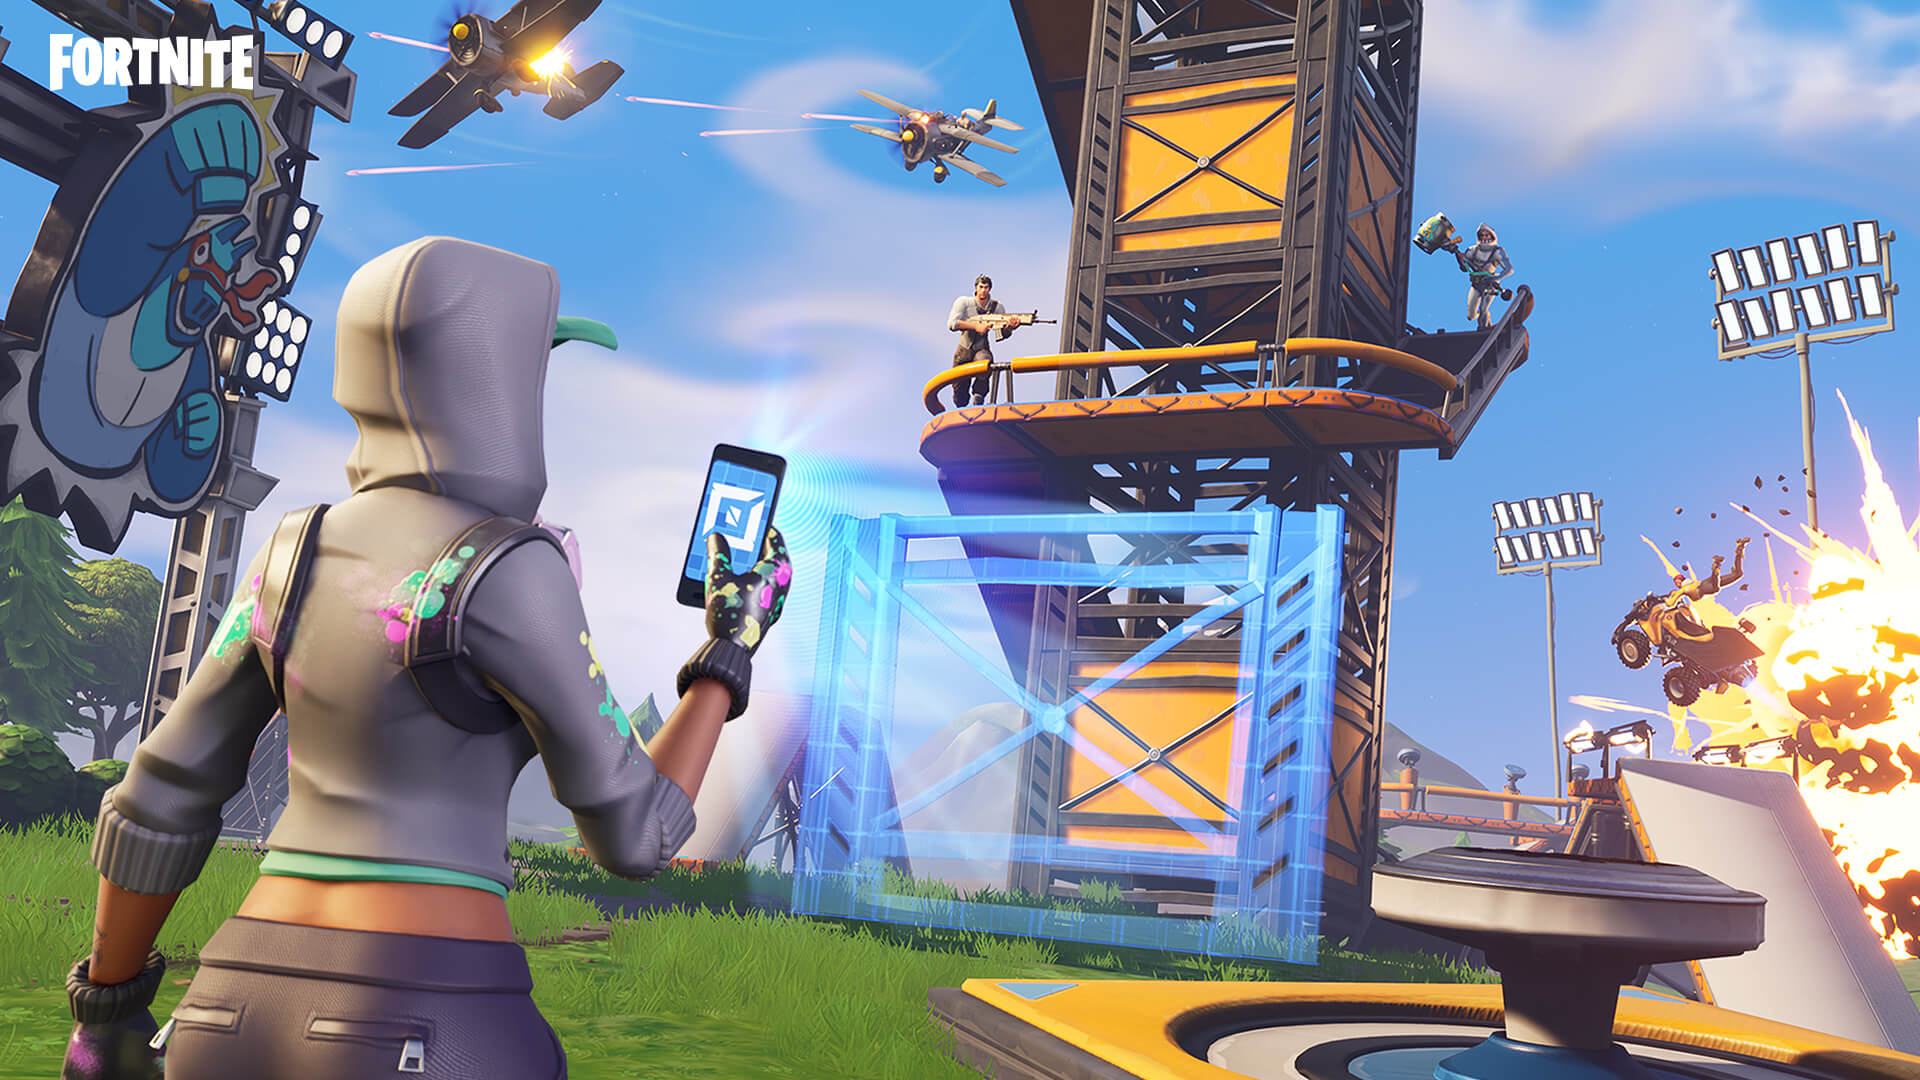 How to Defeat Ruckus in Fortnite